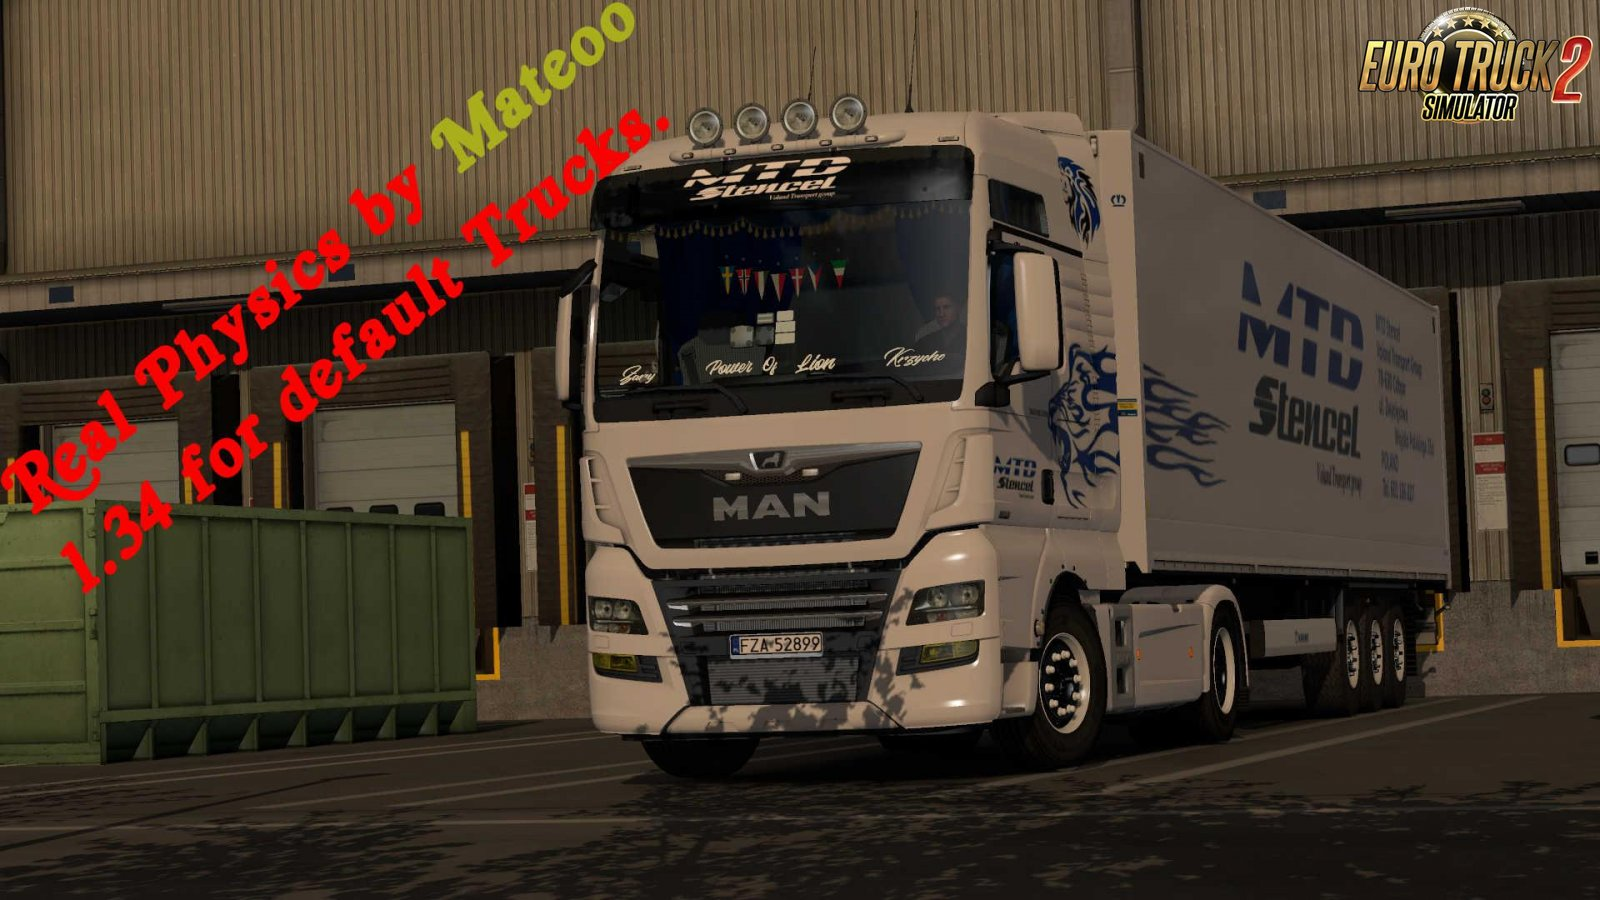 Real Physics by Mateoo 1.34.x | ETS2 mods | Euro truck simulator 2 mods - ETS2MODS.LT